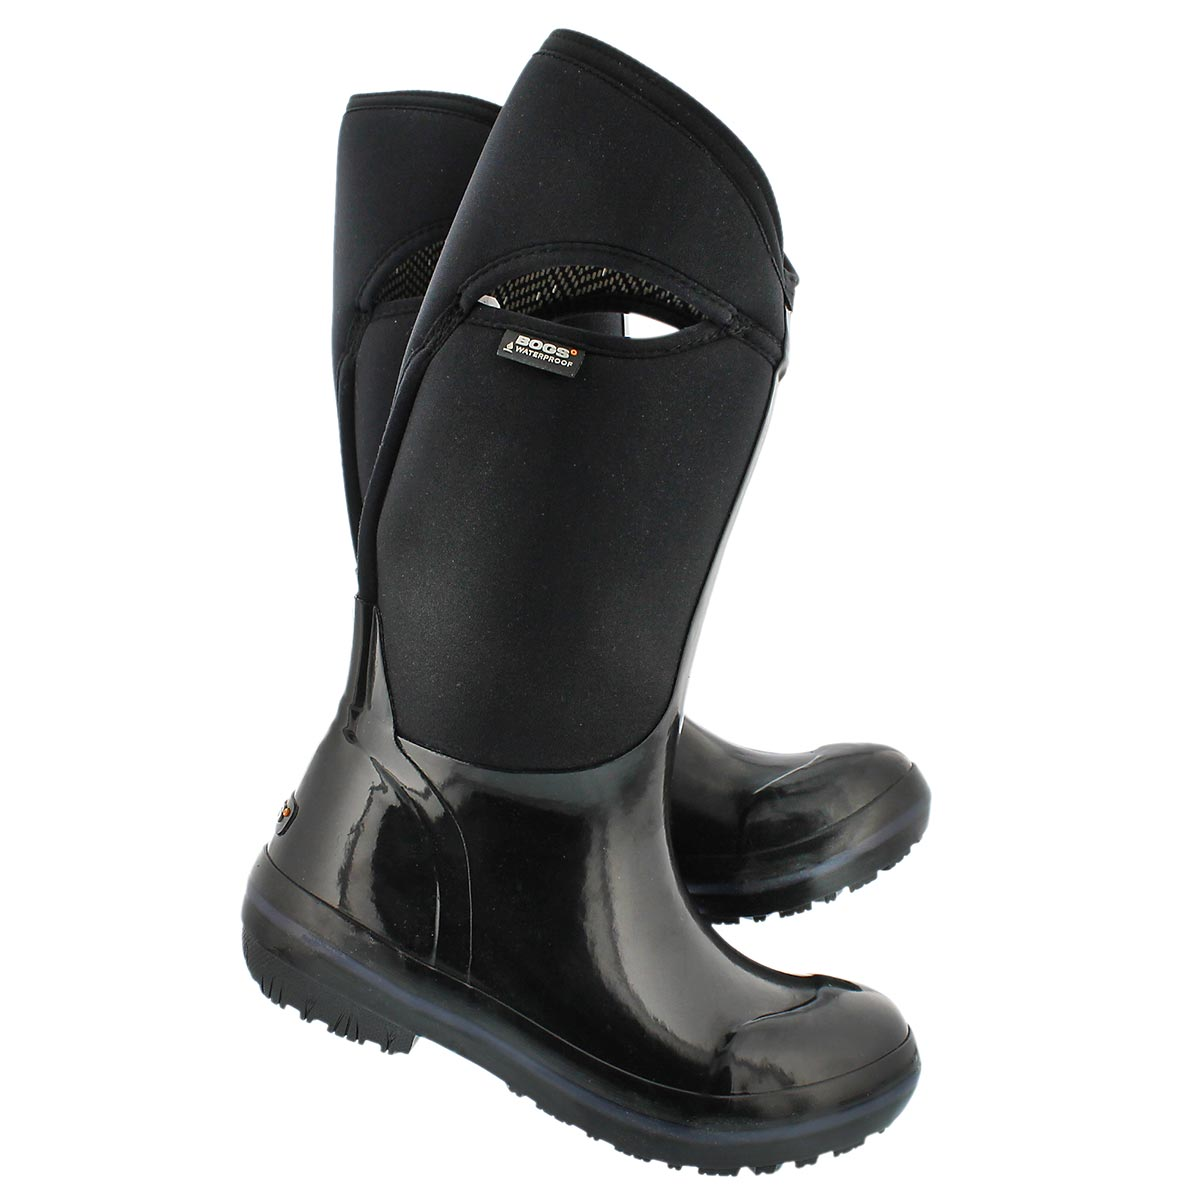 Lds Solid Tall black waterproof boot